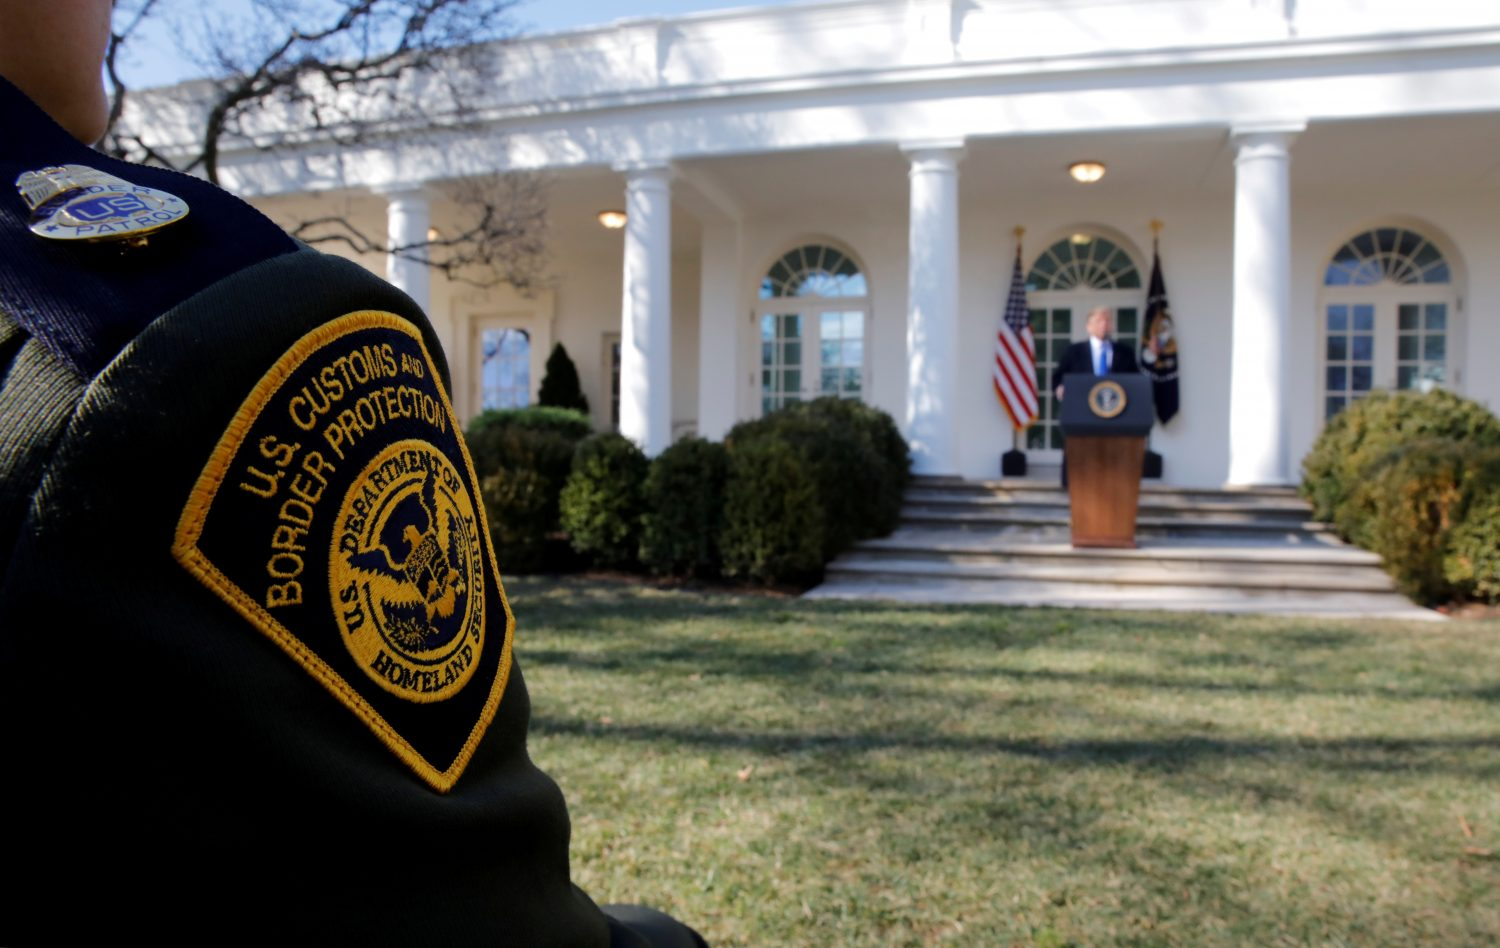 A U.S. Border Patrol agent listens from the front row as President Donald Trump declares a national emergency at the U.S.-Mexico border during remarks about border security in the Rose Garden of the White House in Washington, U.S., February 15, 2019. REUTERS/Carlos Barria